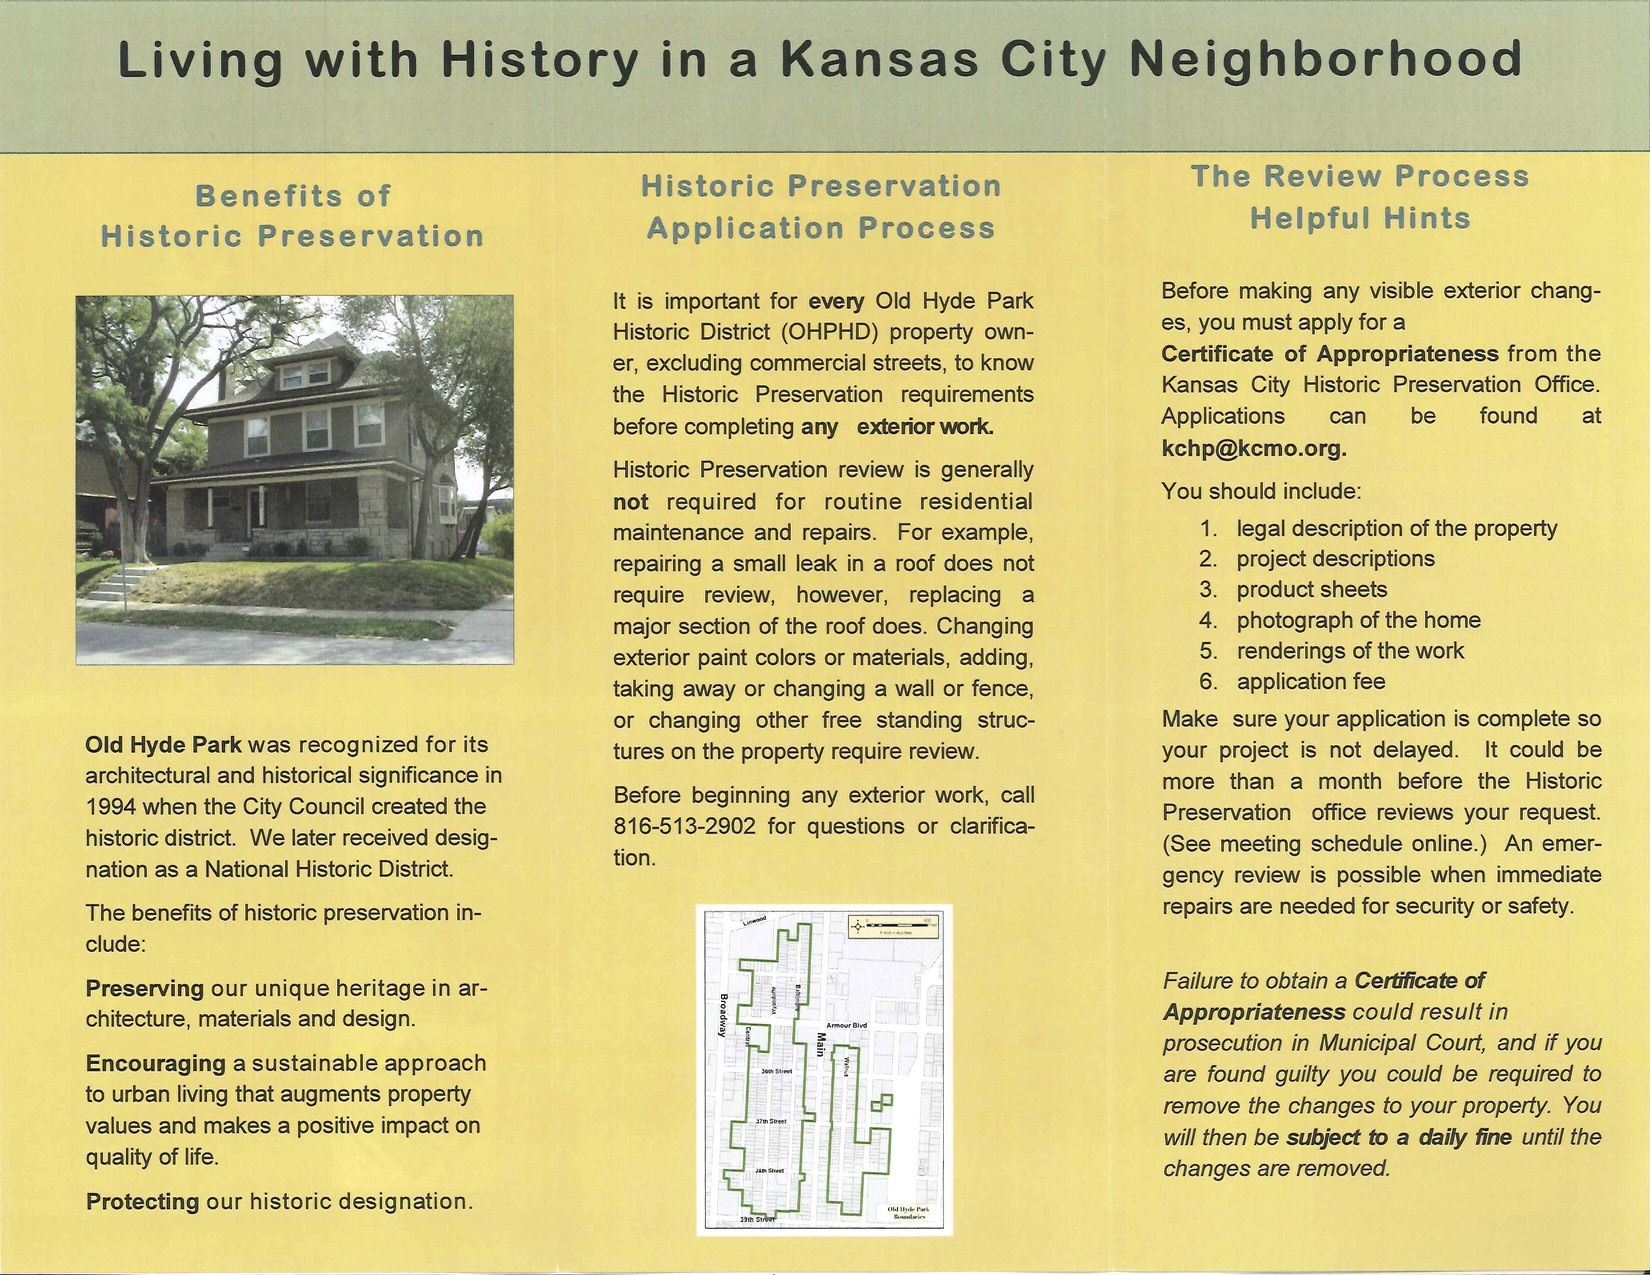 Welcome Brochure for New Residents | CommunityKC